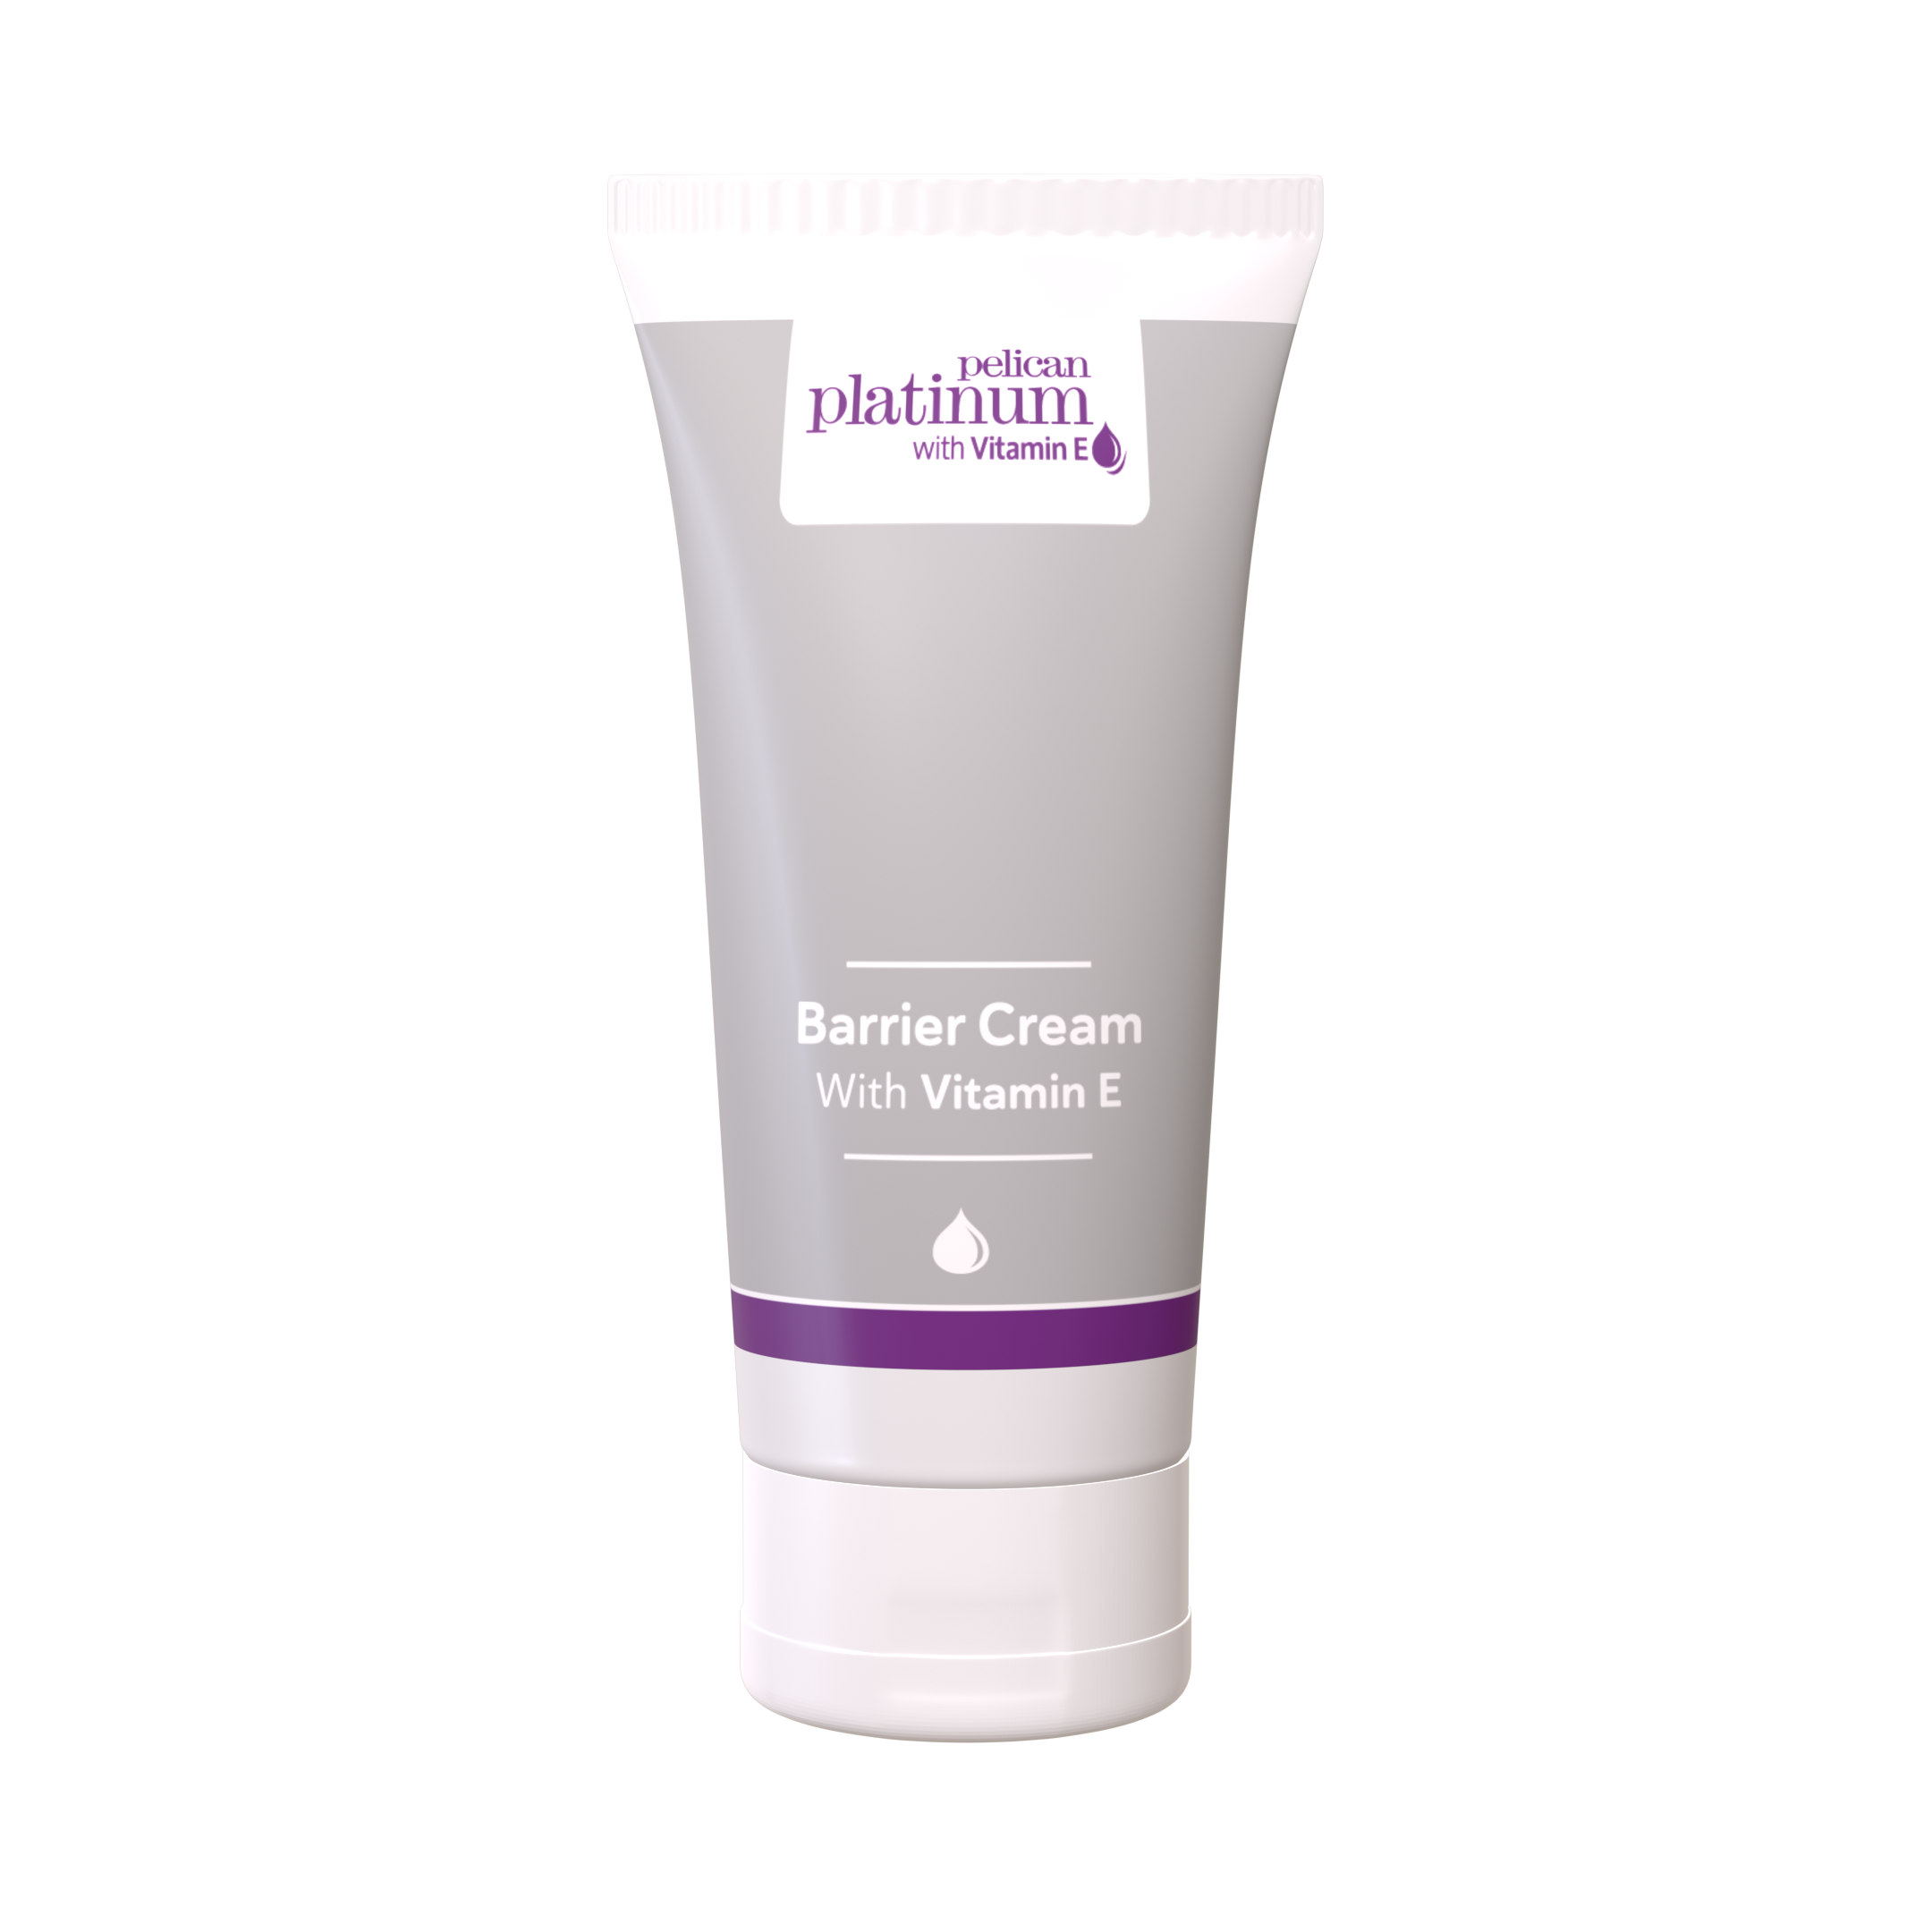 Platinum with Vitamin E Barrier Cream